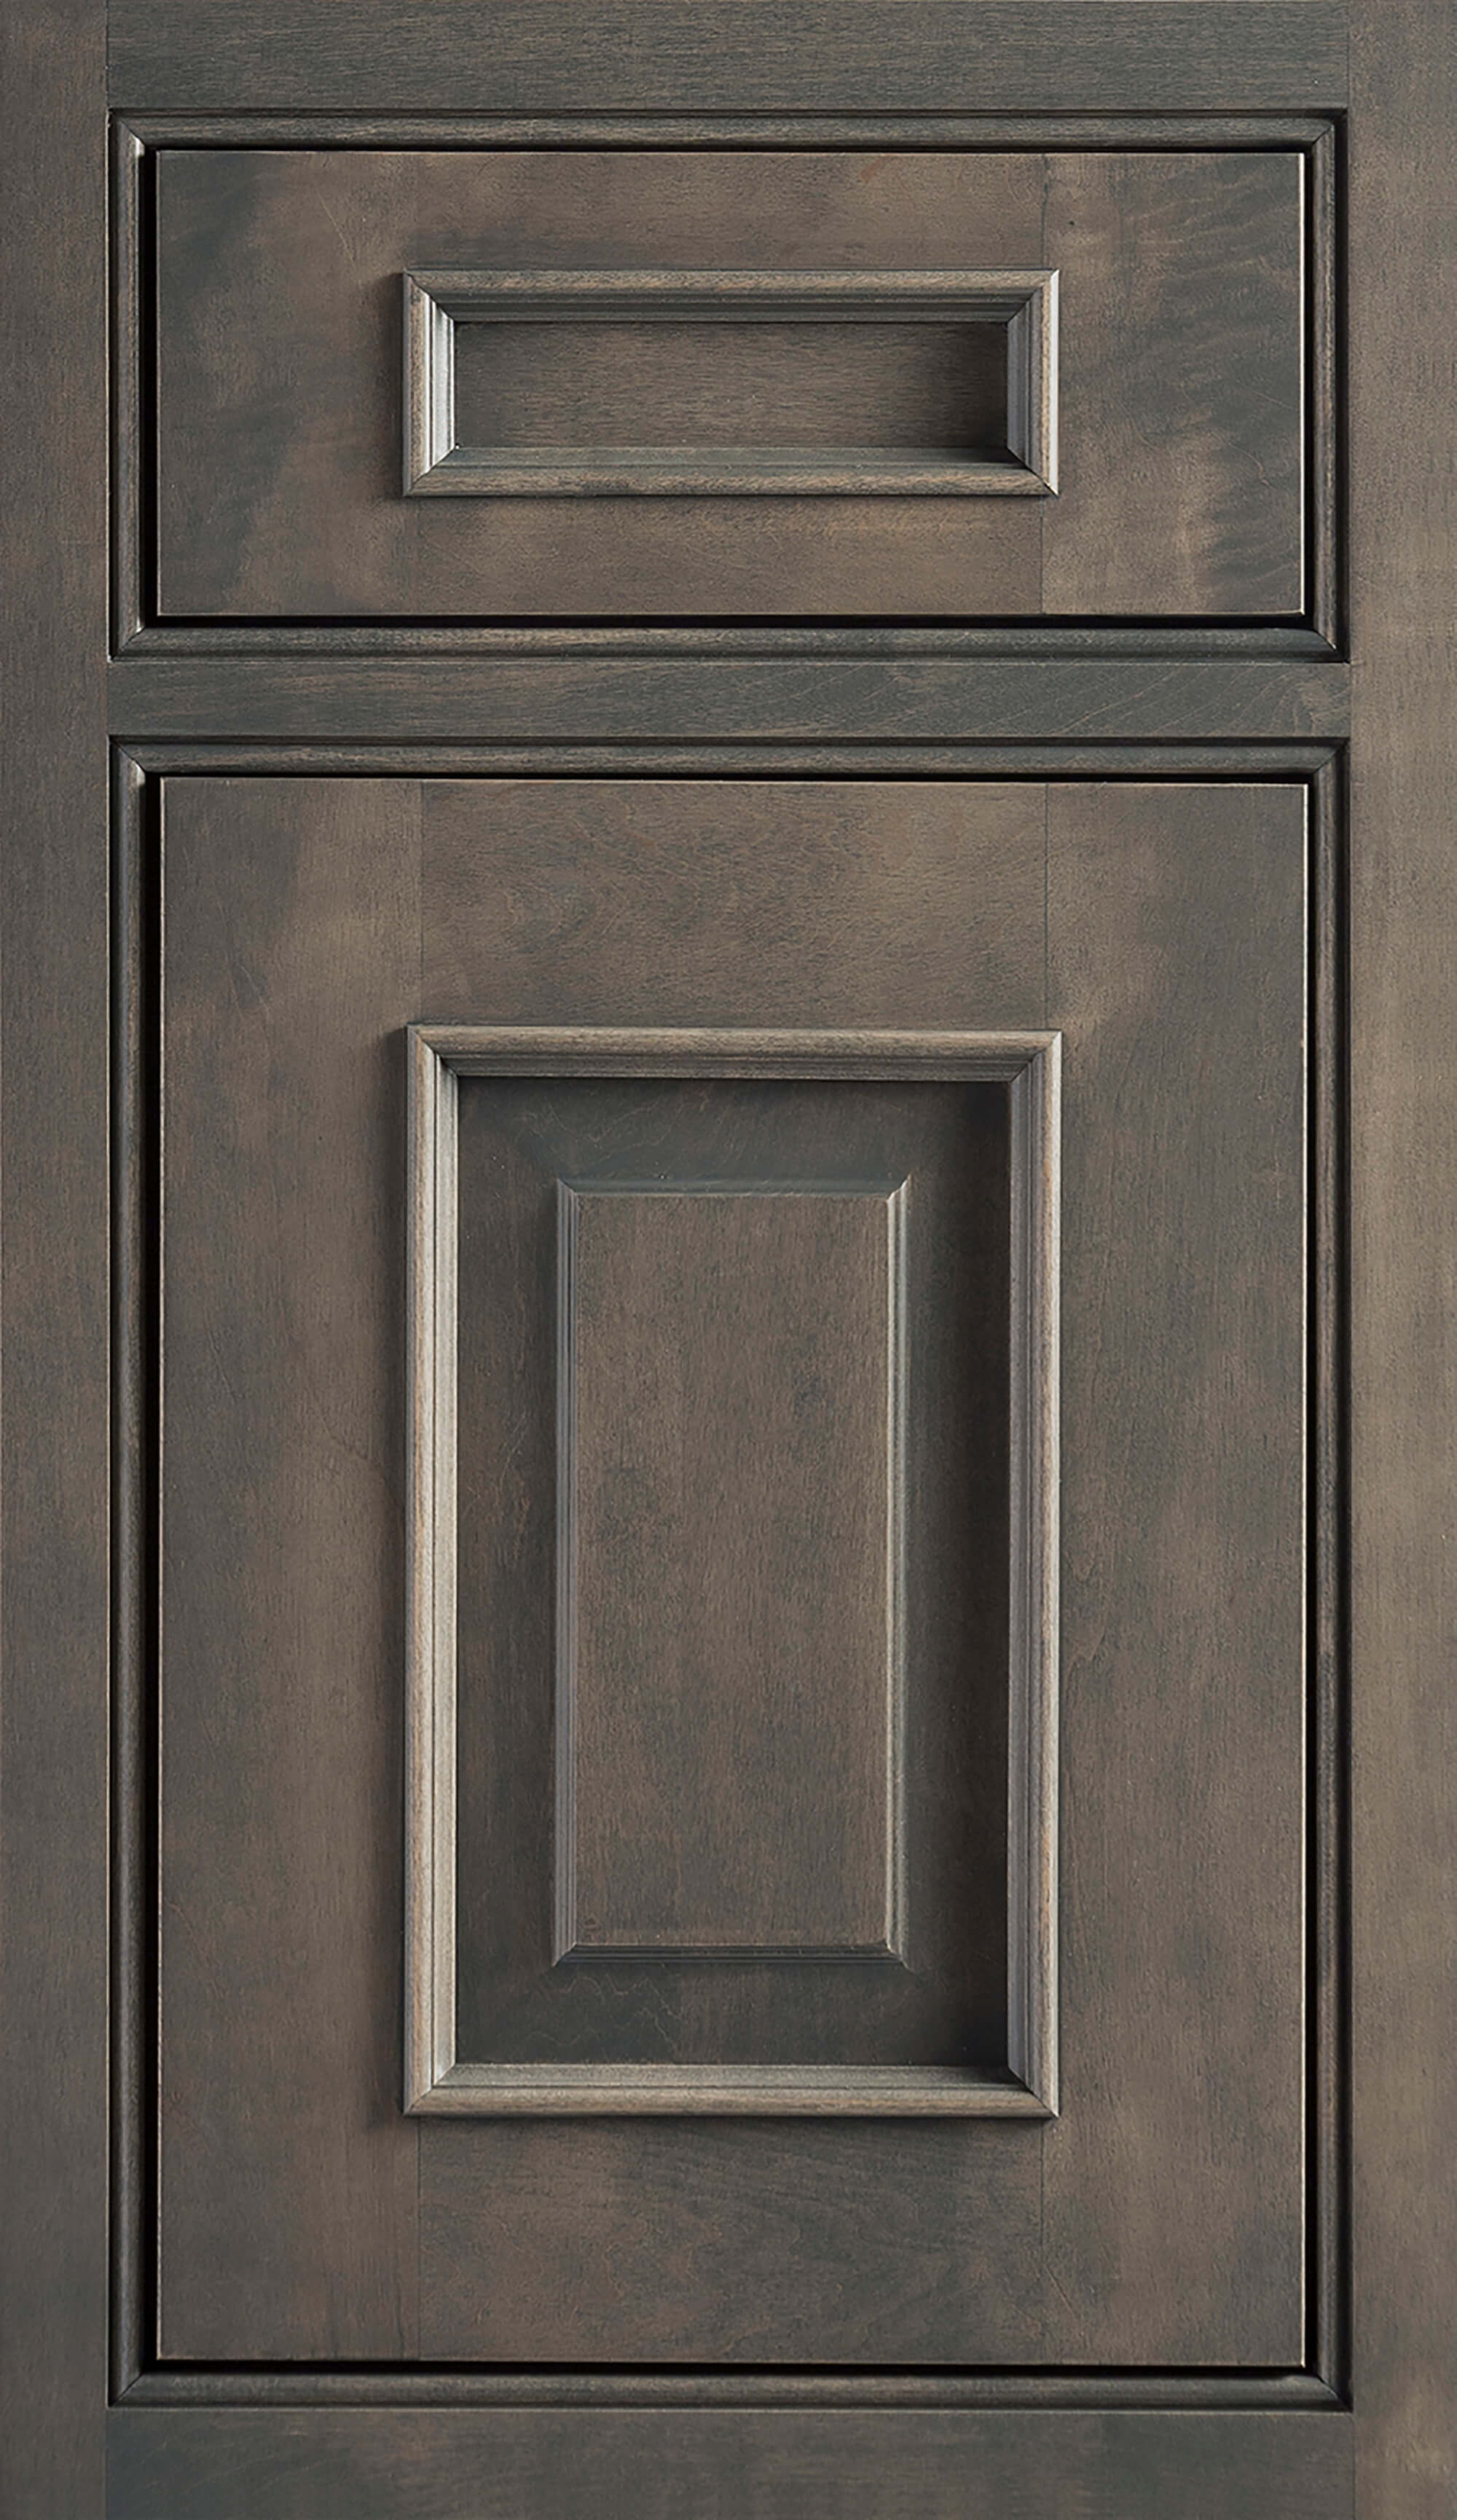 Dura Supreme Cabinetry, Inset Styling on the Montego-Inset door style with Beaded Face Frame, one Barrel, and one Concealed Hinging